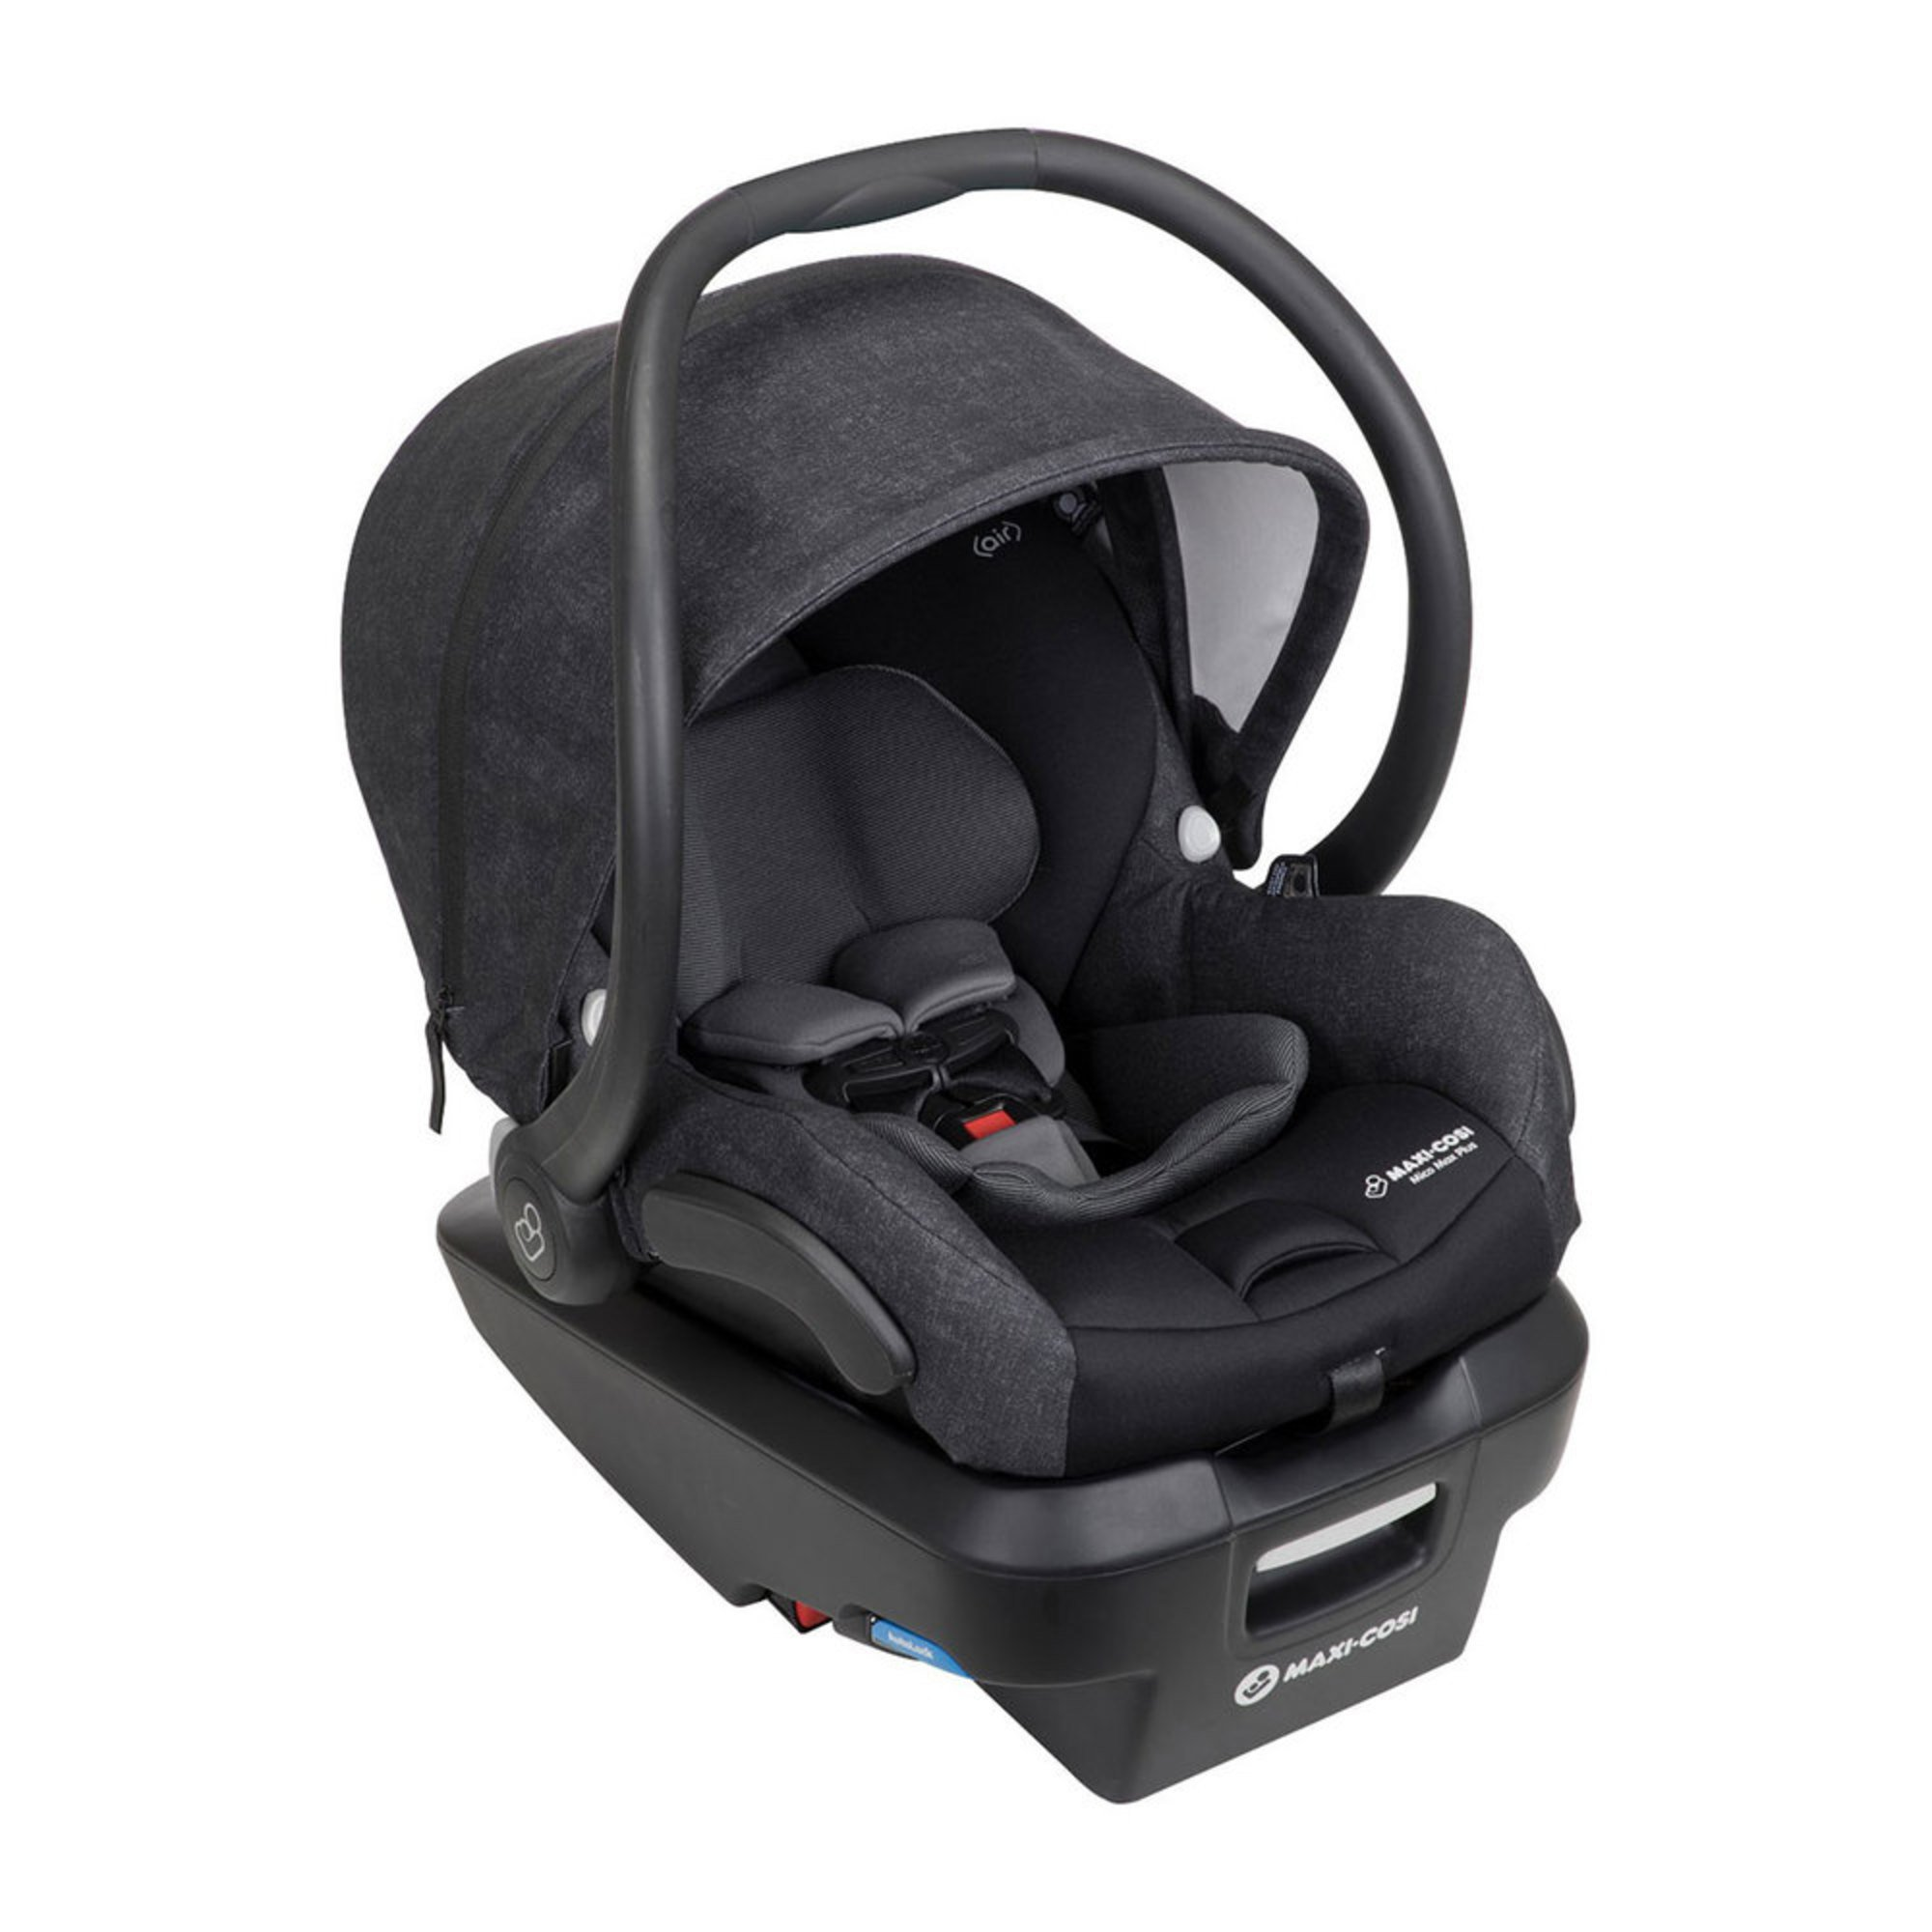 Infant Carrier Military Maxi Cosi Mico Max Plus Infant Car Seat Nomad Black